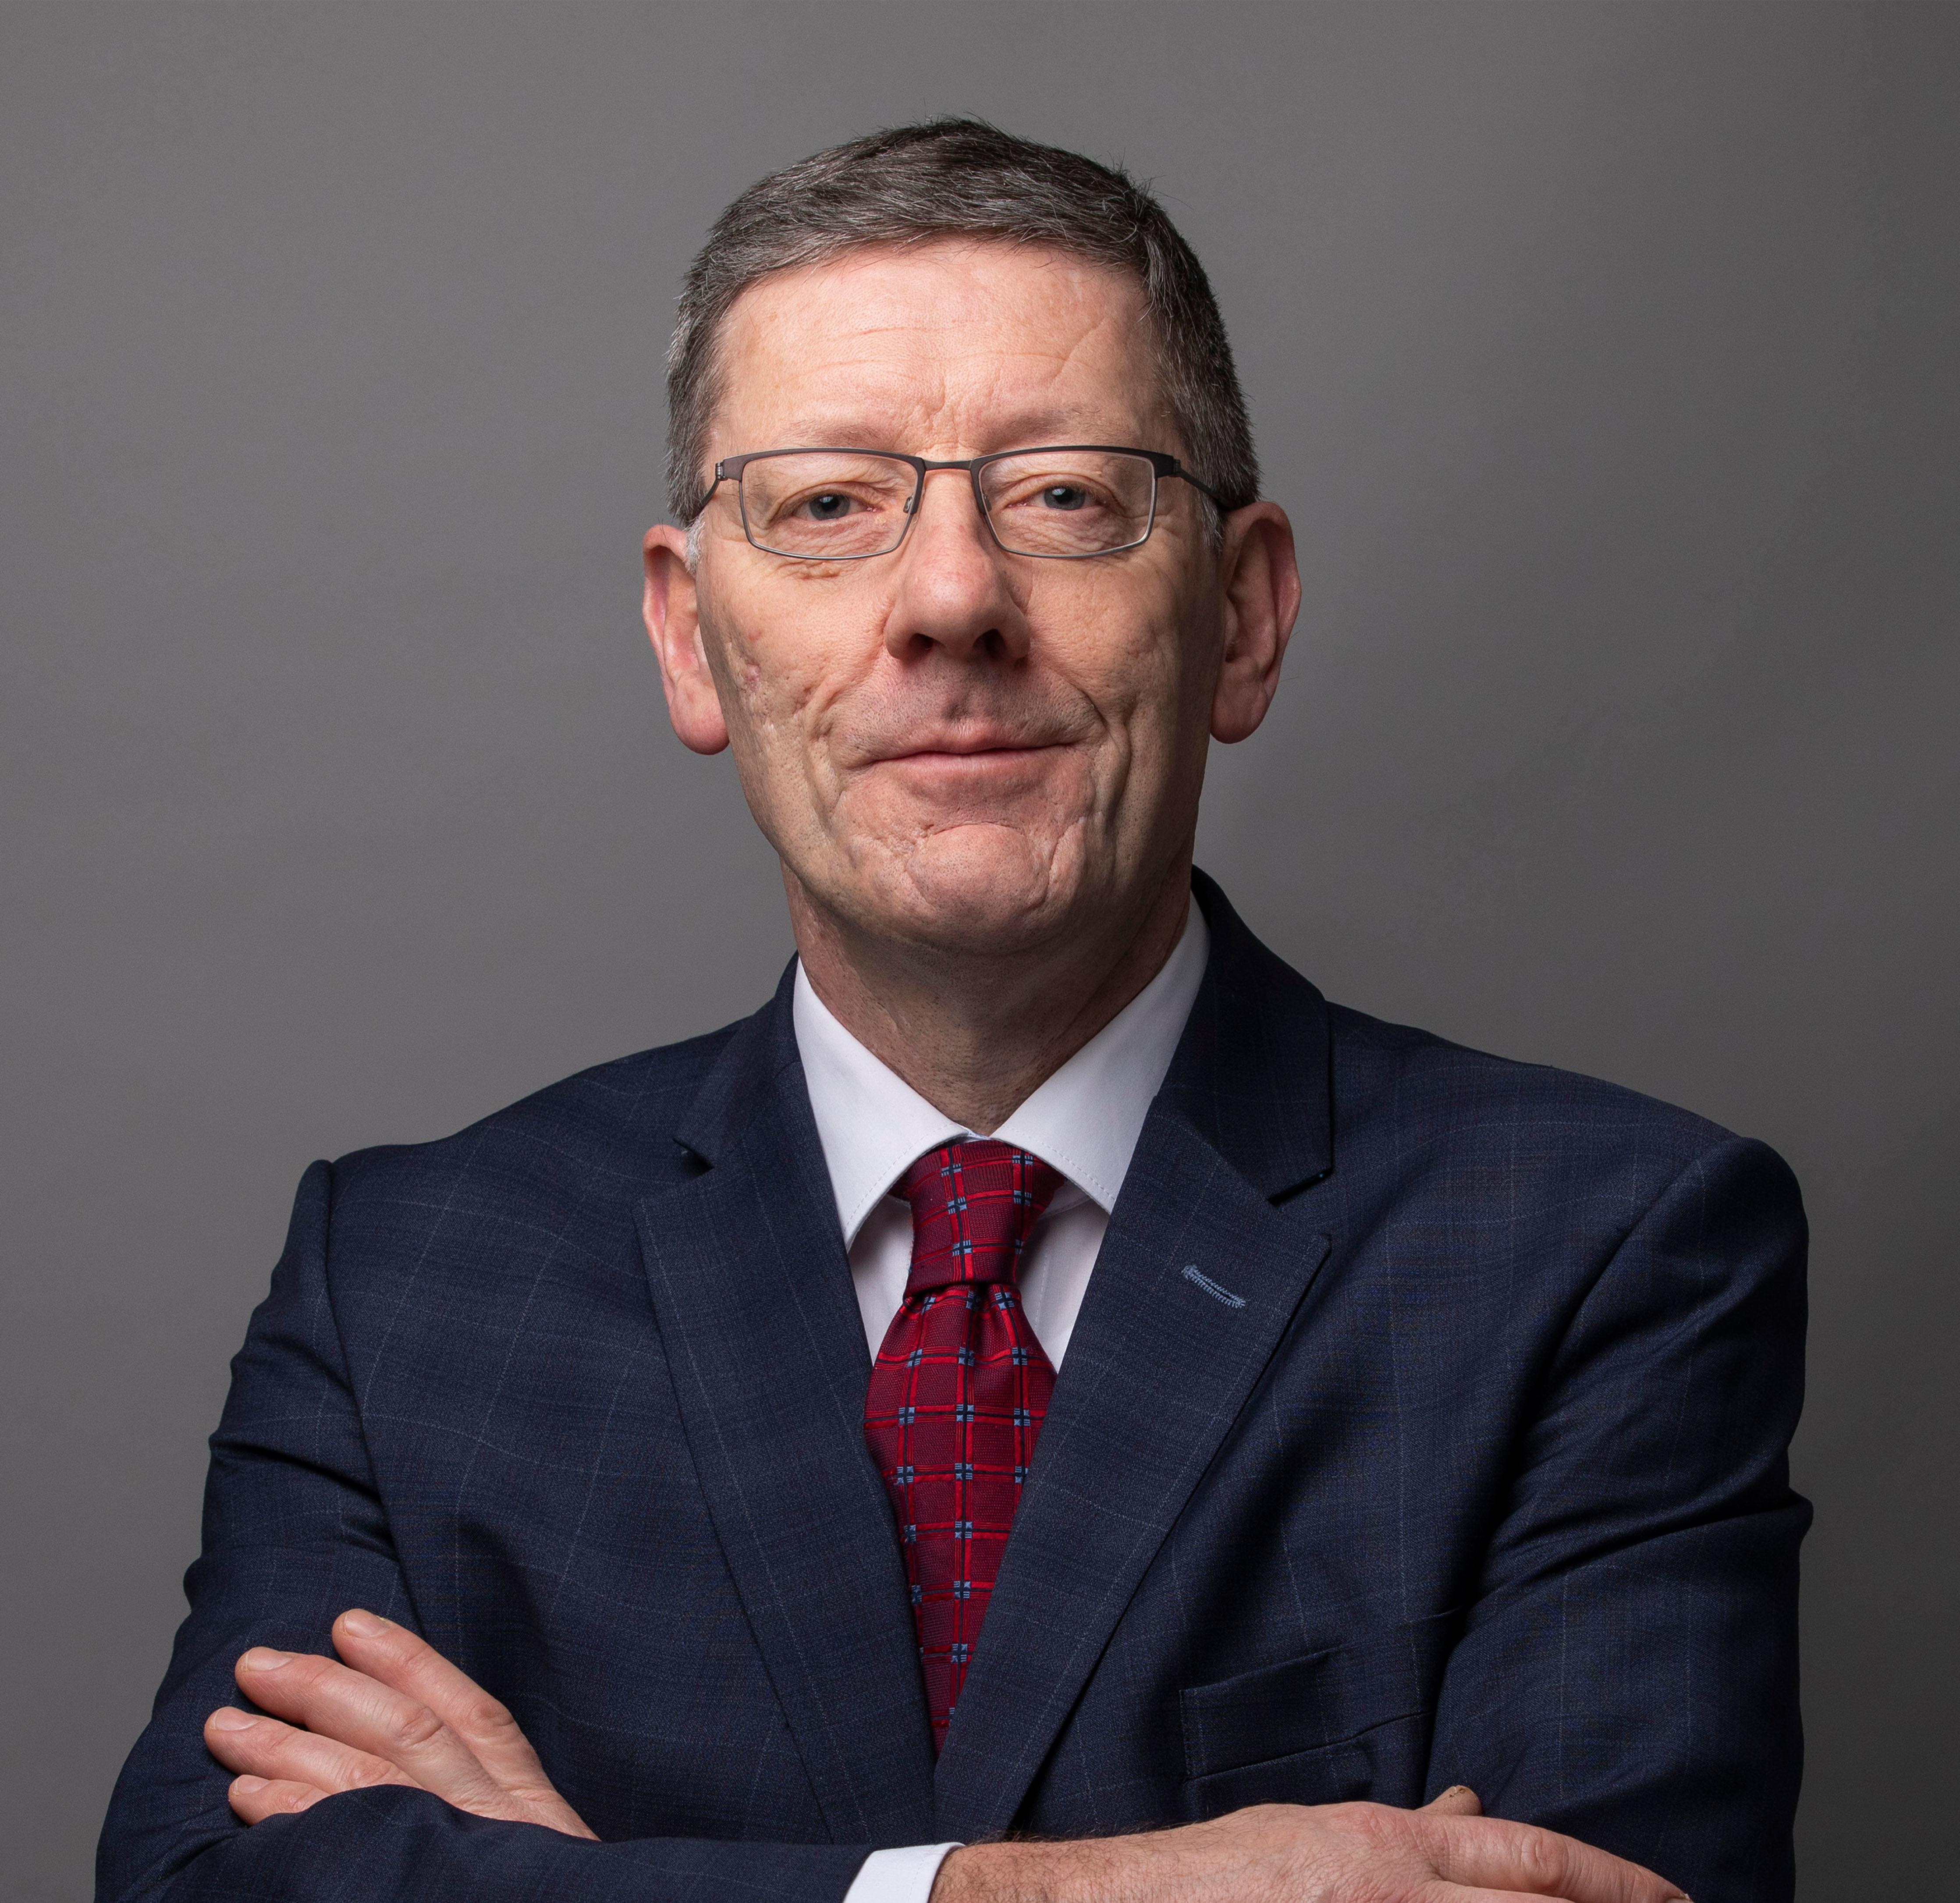 New Vice Chairman for Dairygold